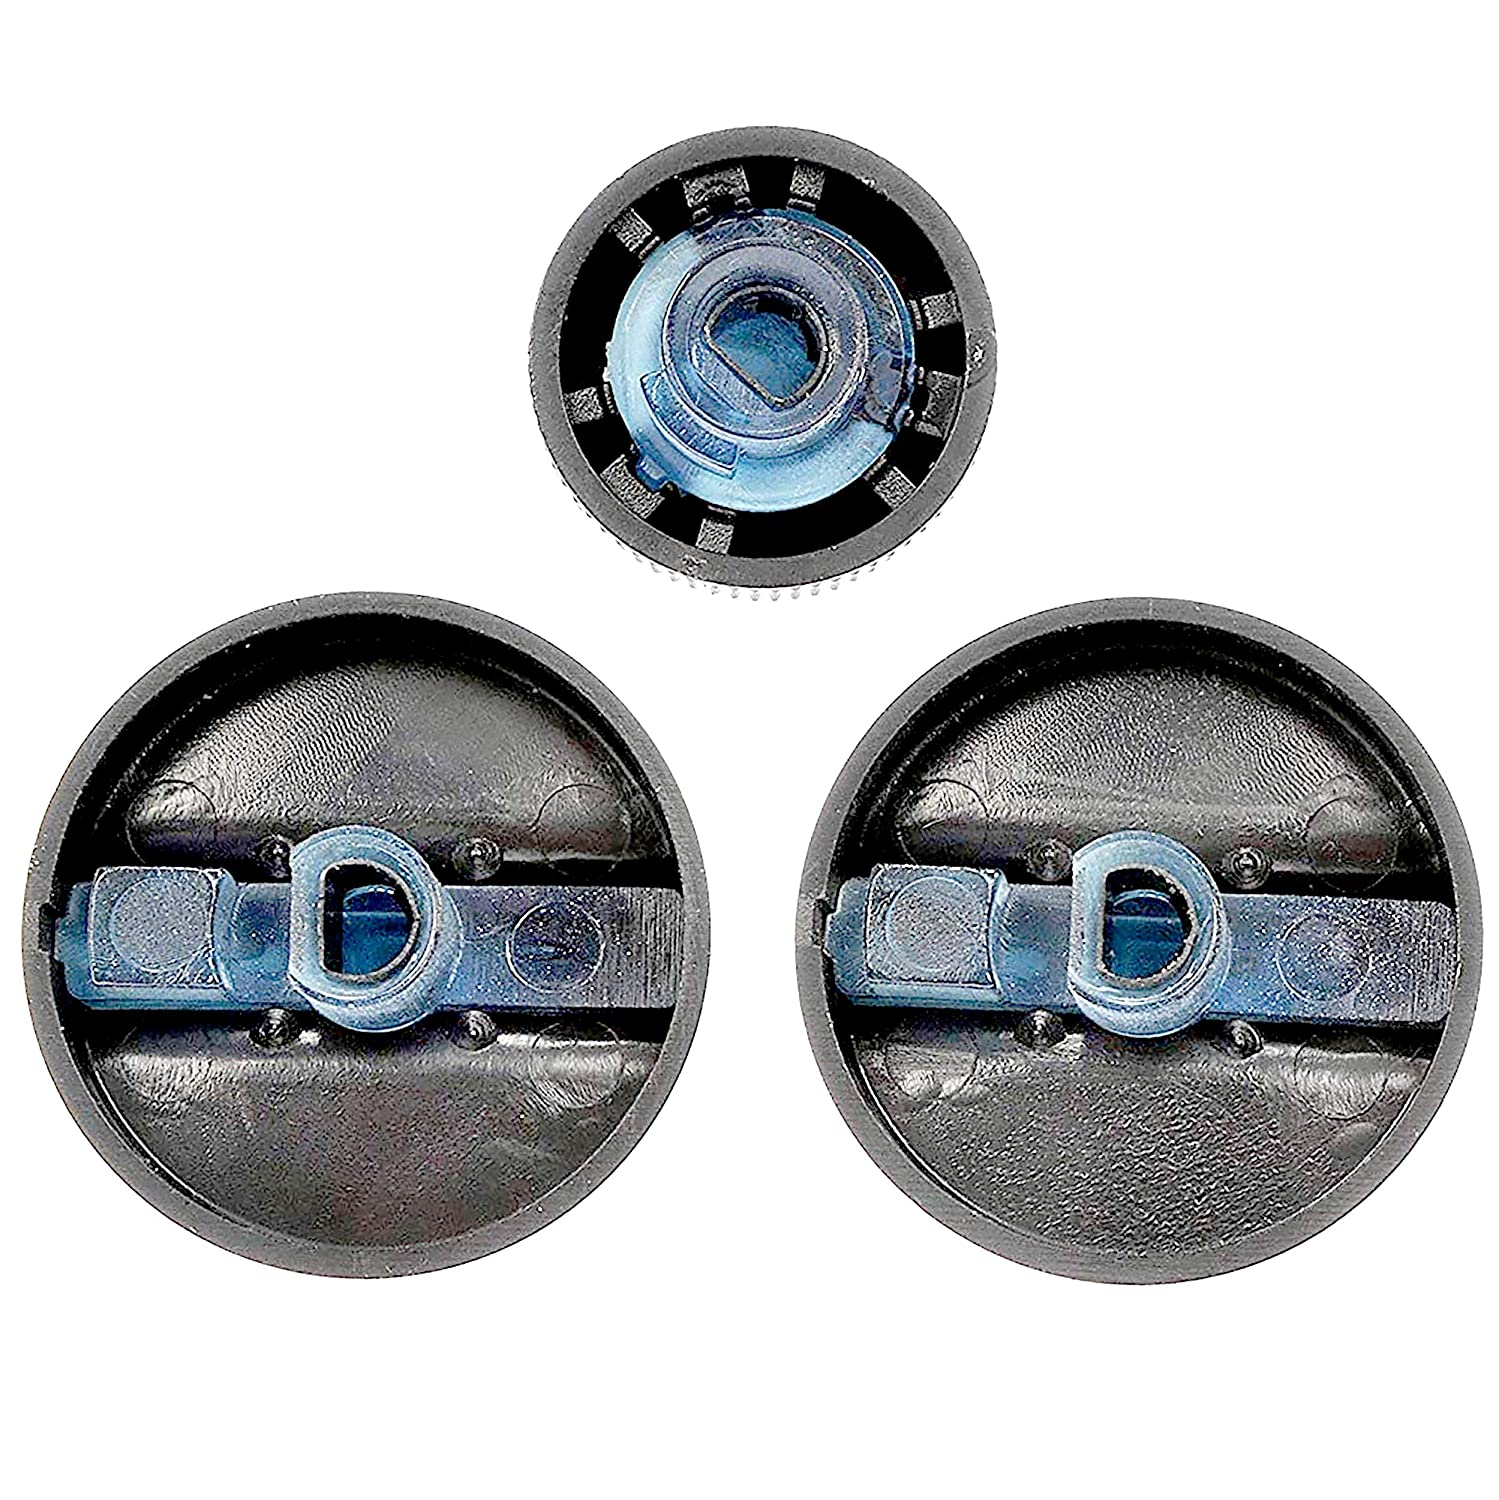 Includes 2 HVAC Control Knobs = 04882482, 1 Blower Speed Control Knob = 04882511 APDTY 117374 AC Heat HVAC Control Head Replacement Control Knob Set For 1994-1997 Dodge Ram 1500 2500 3500 Pickup